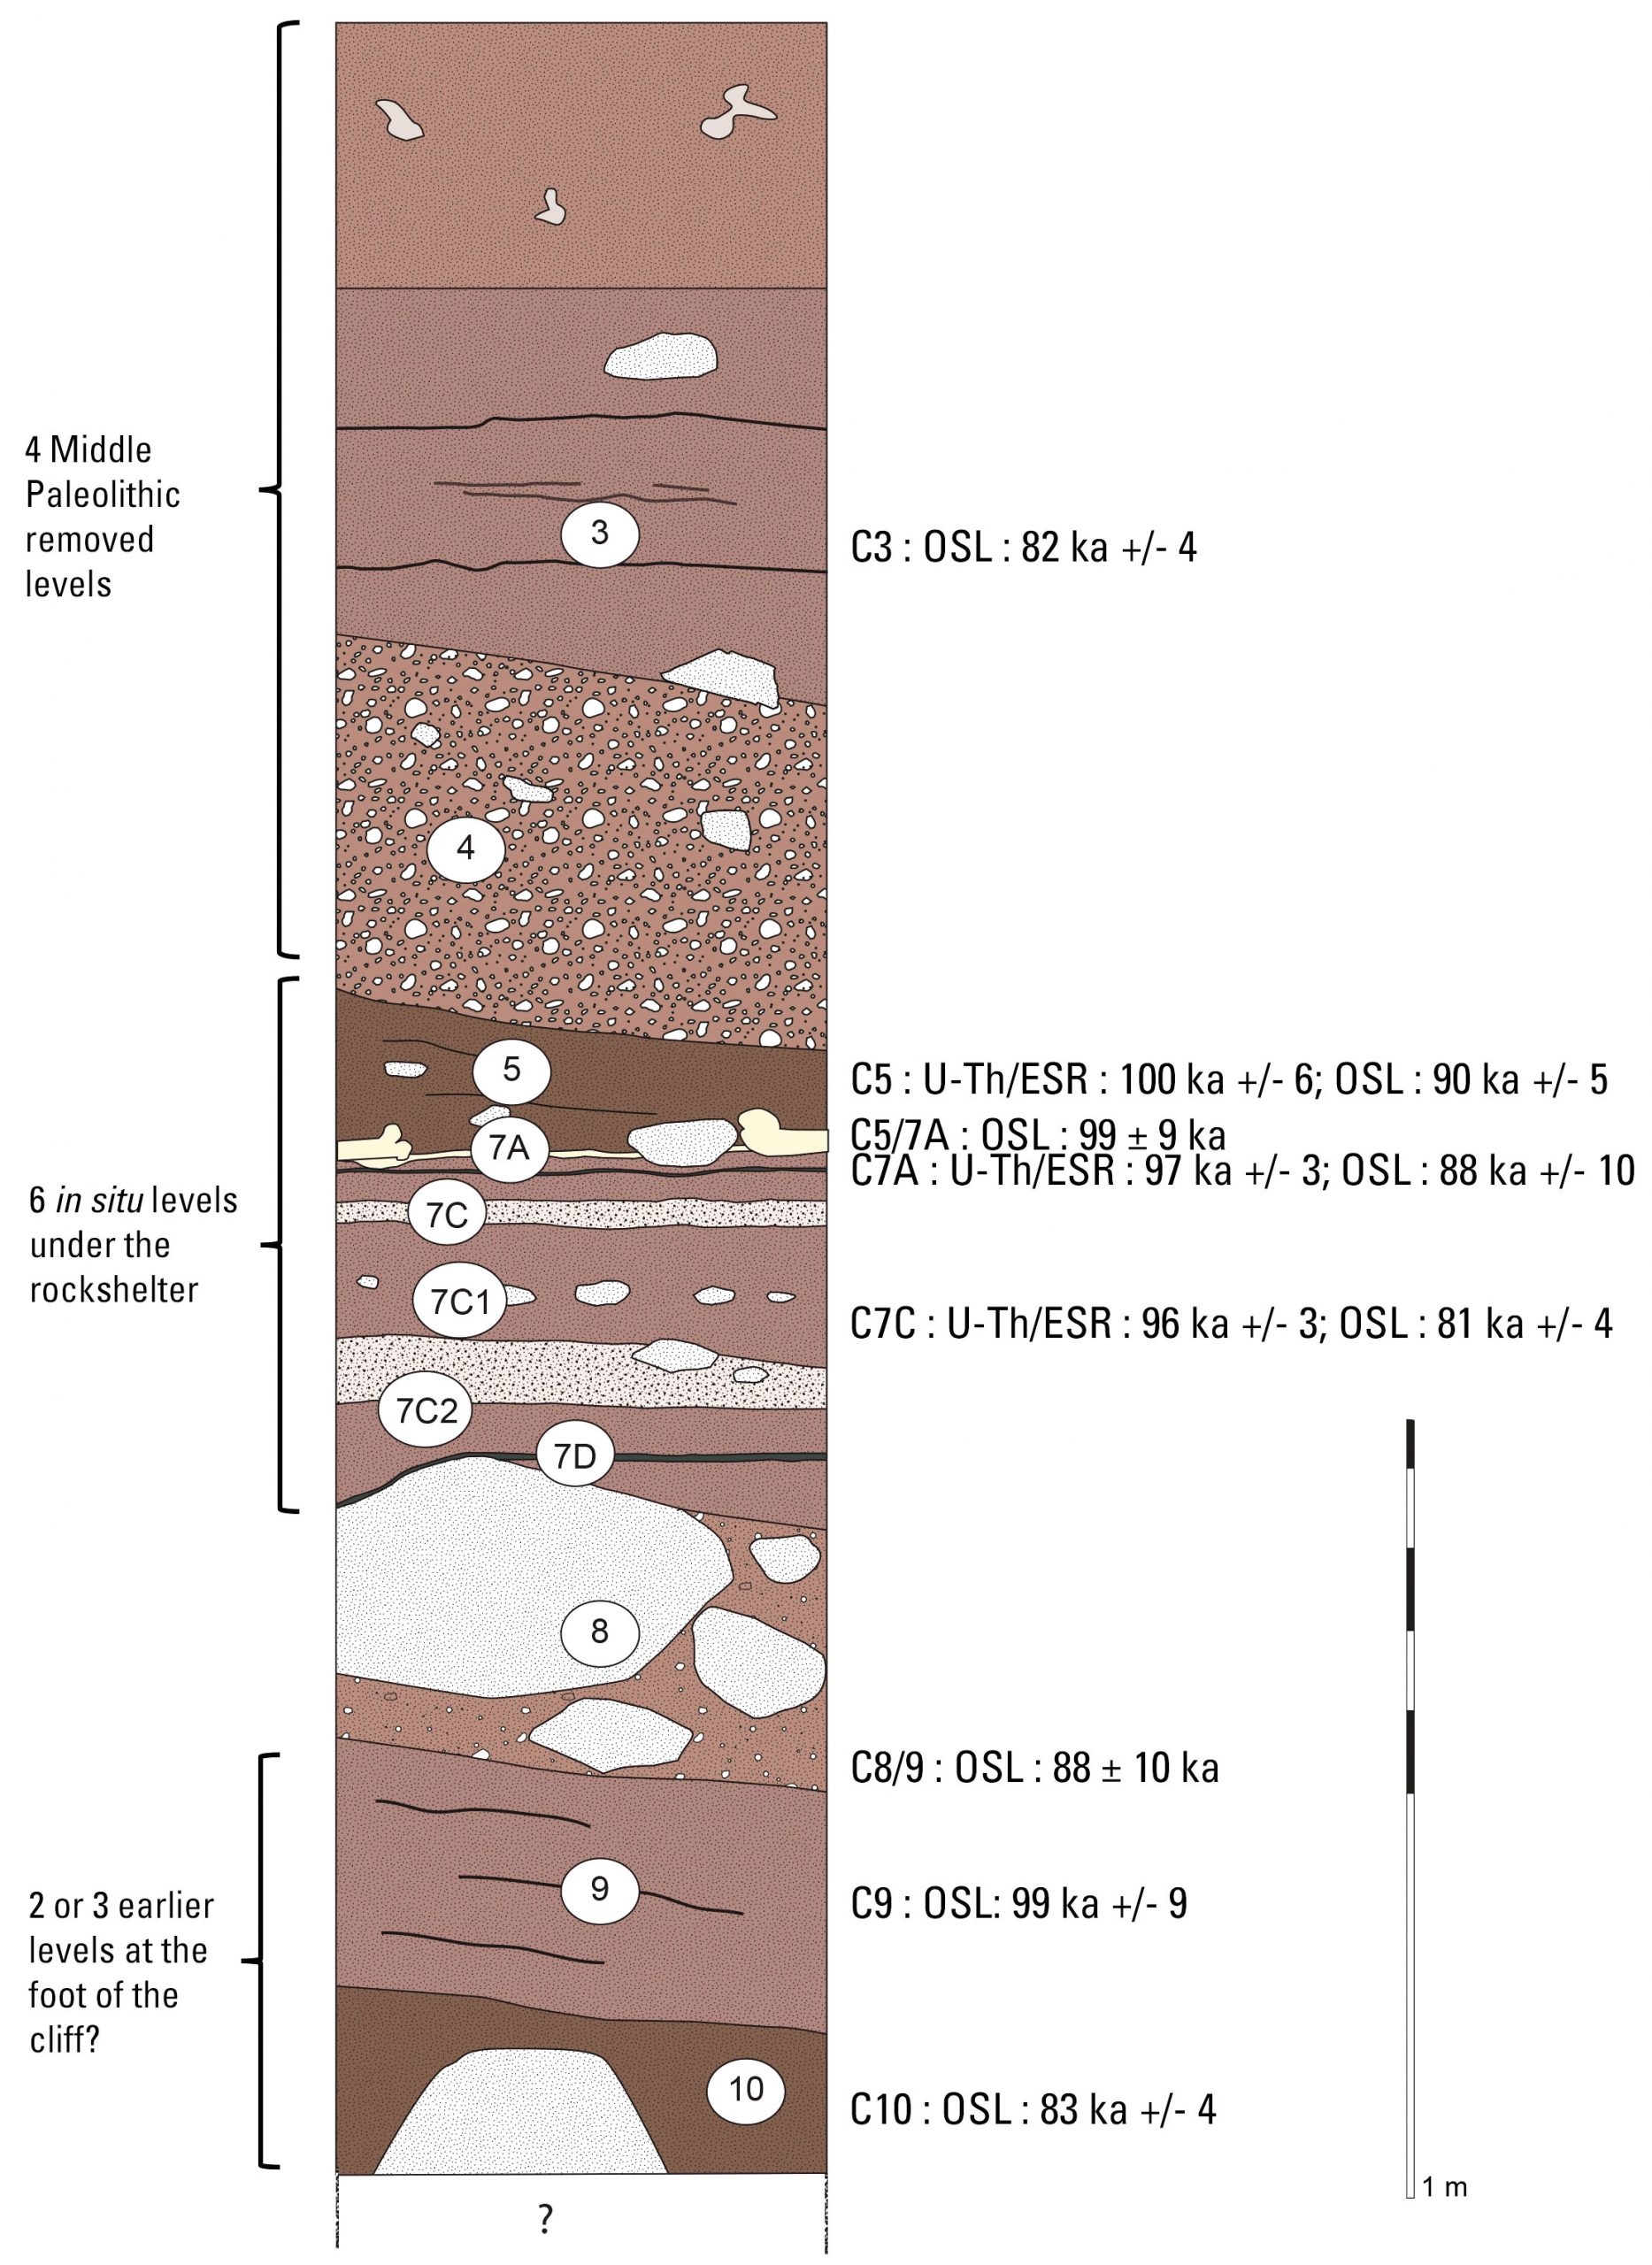 Synthetic stratigraphic section